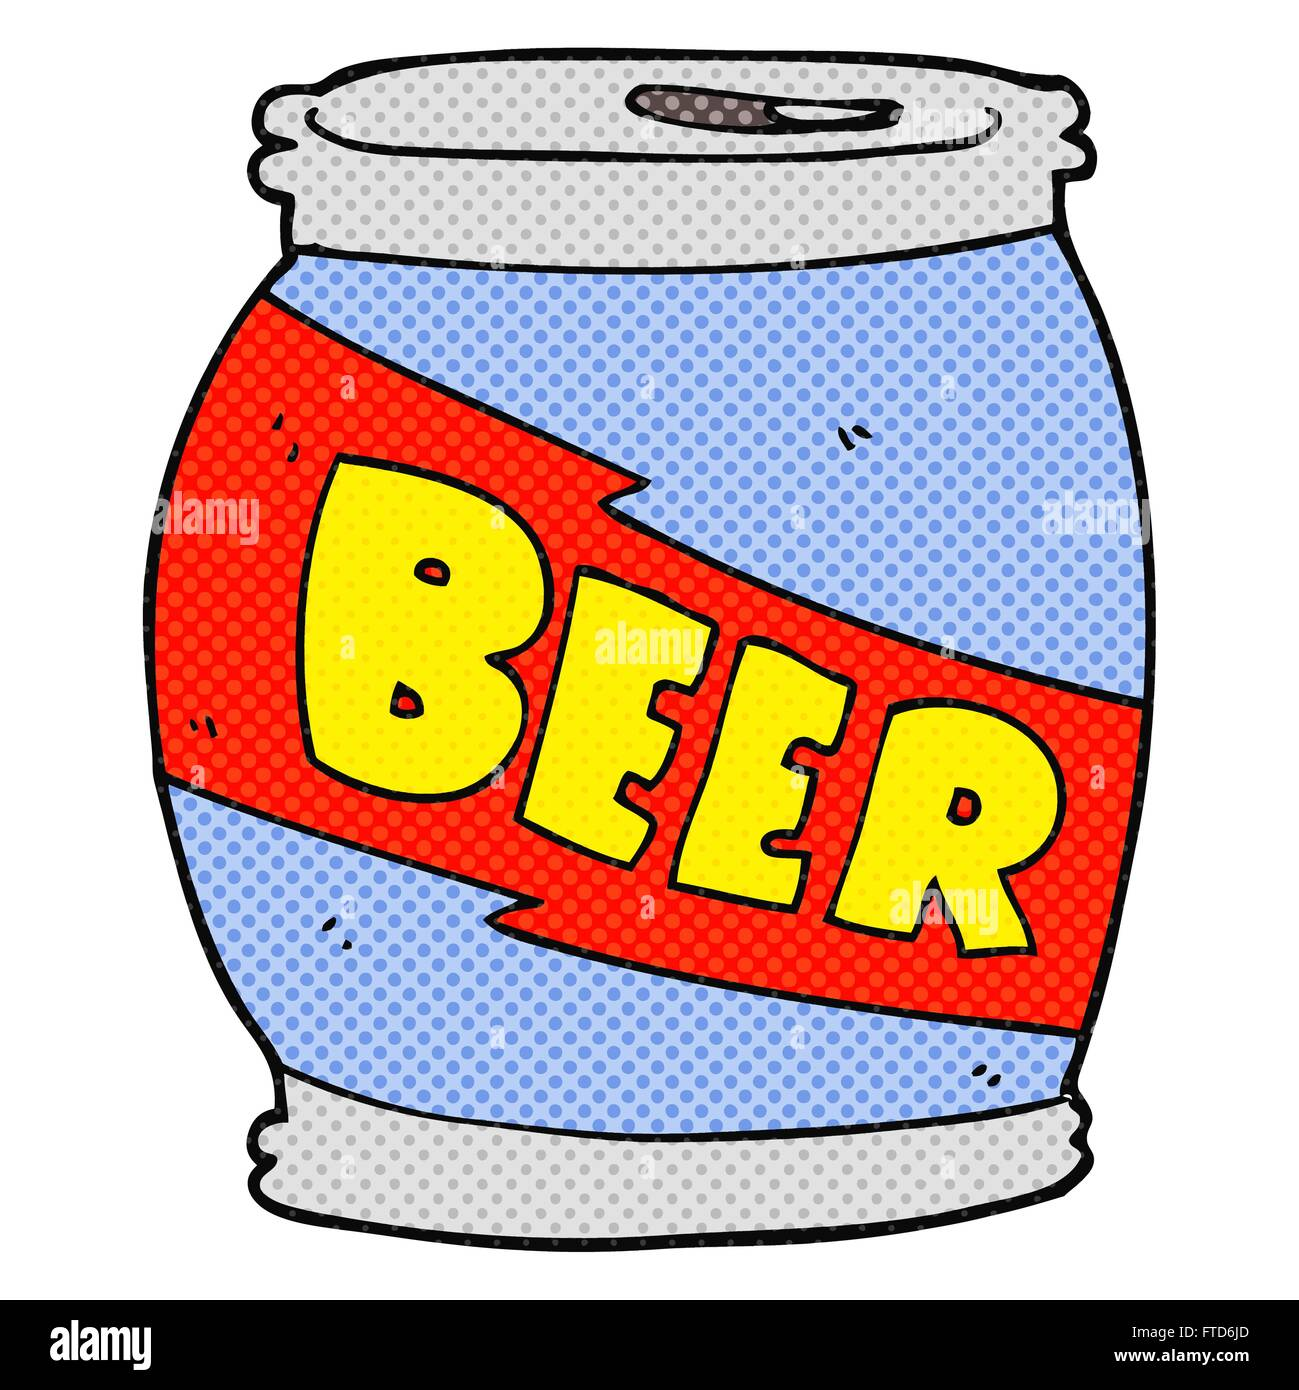 hight resolution of freehand drawn cartoon beer can